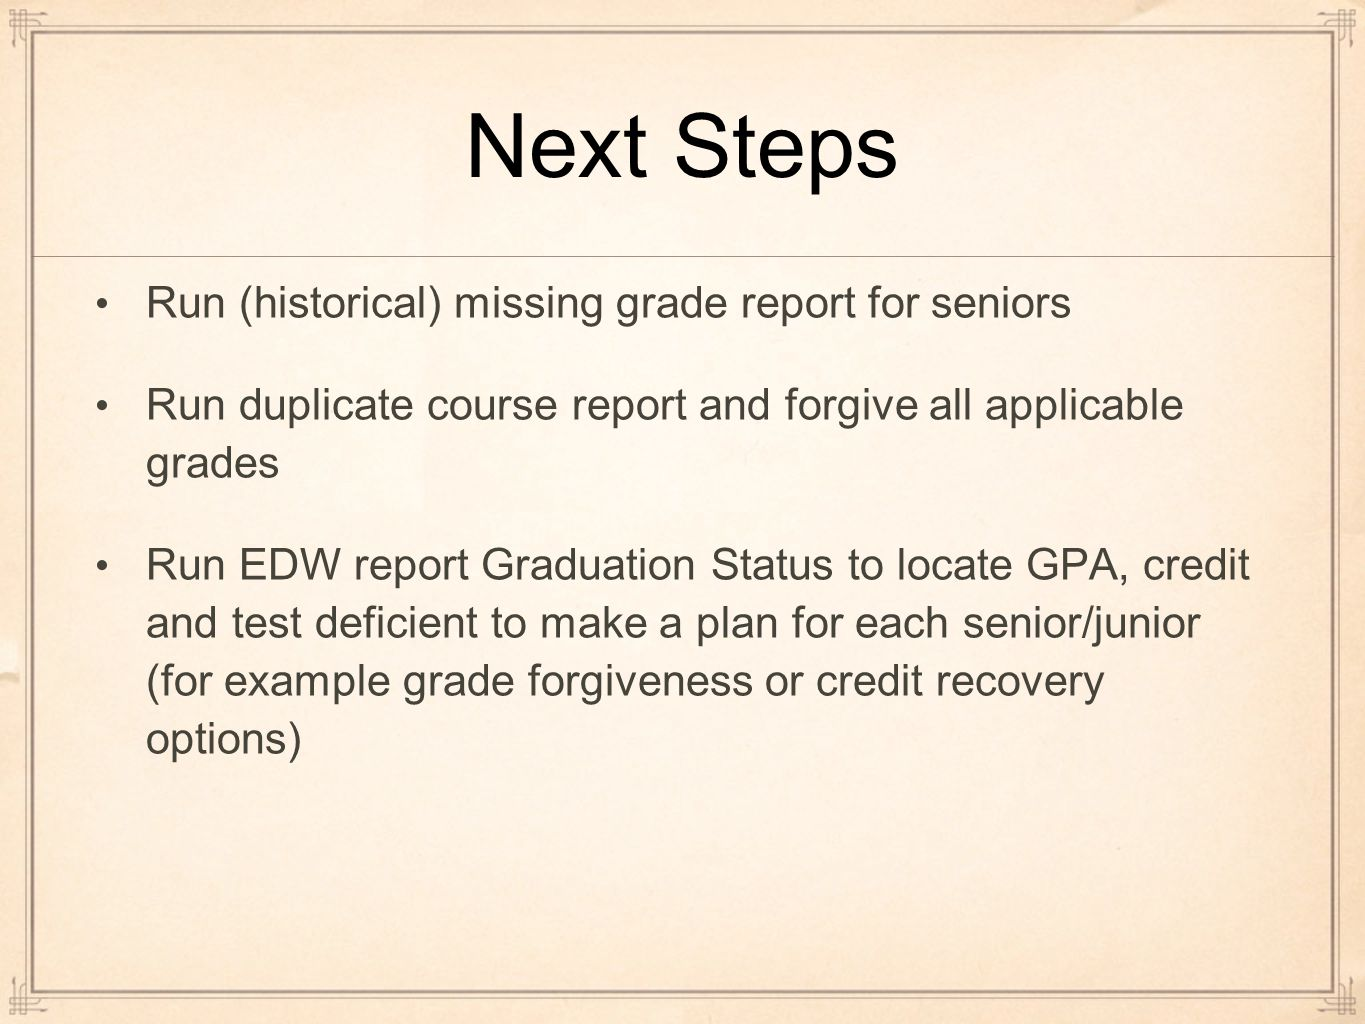 Next Steps Run (historical) missing grade report for seniors Run duplicate course report and forgive all applicable grades Run EDW report Graduation Status to locate GPA, credit and test deficient to make a plan for each senior/junior (for example grade forgiveness or credit recovery options)